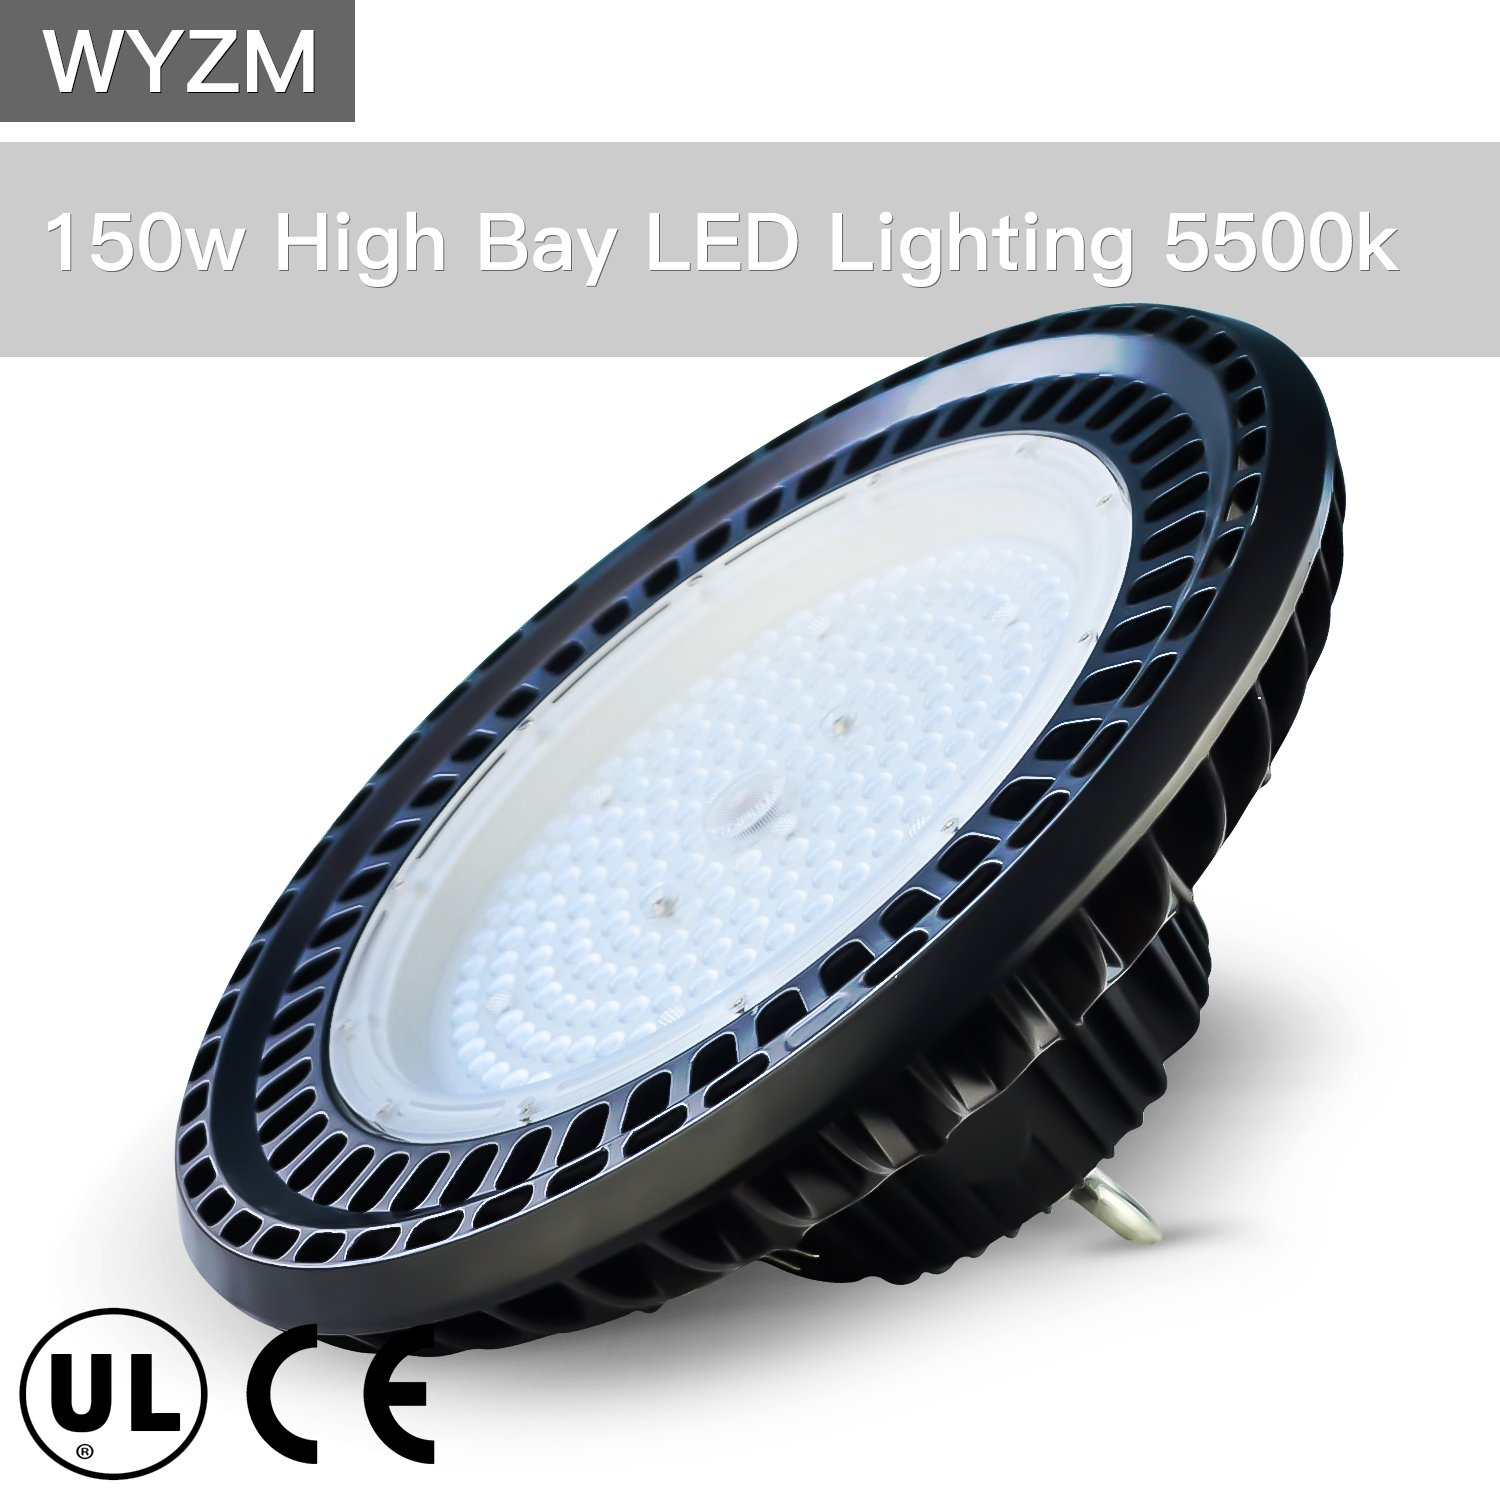 150W High Bay LED Lighting,Works From 110V to 277V,600W HPS or MH Bulbs Equivalent,Great Garage Shopping Mall LED High Bay Lights(150 Watts) by WYZM